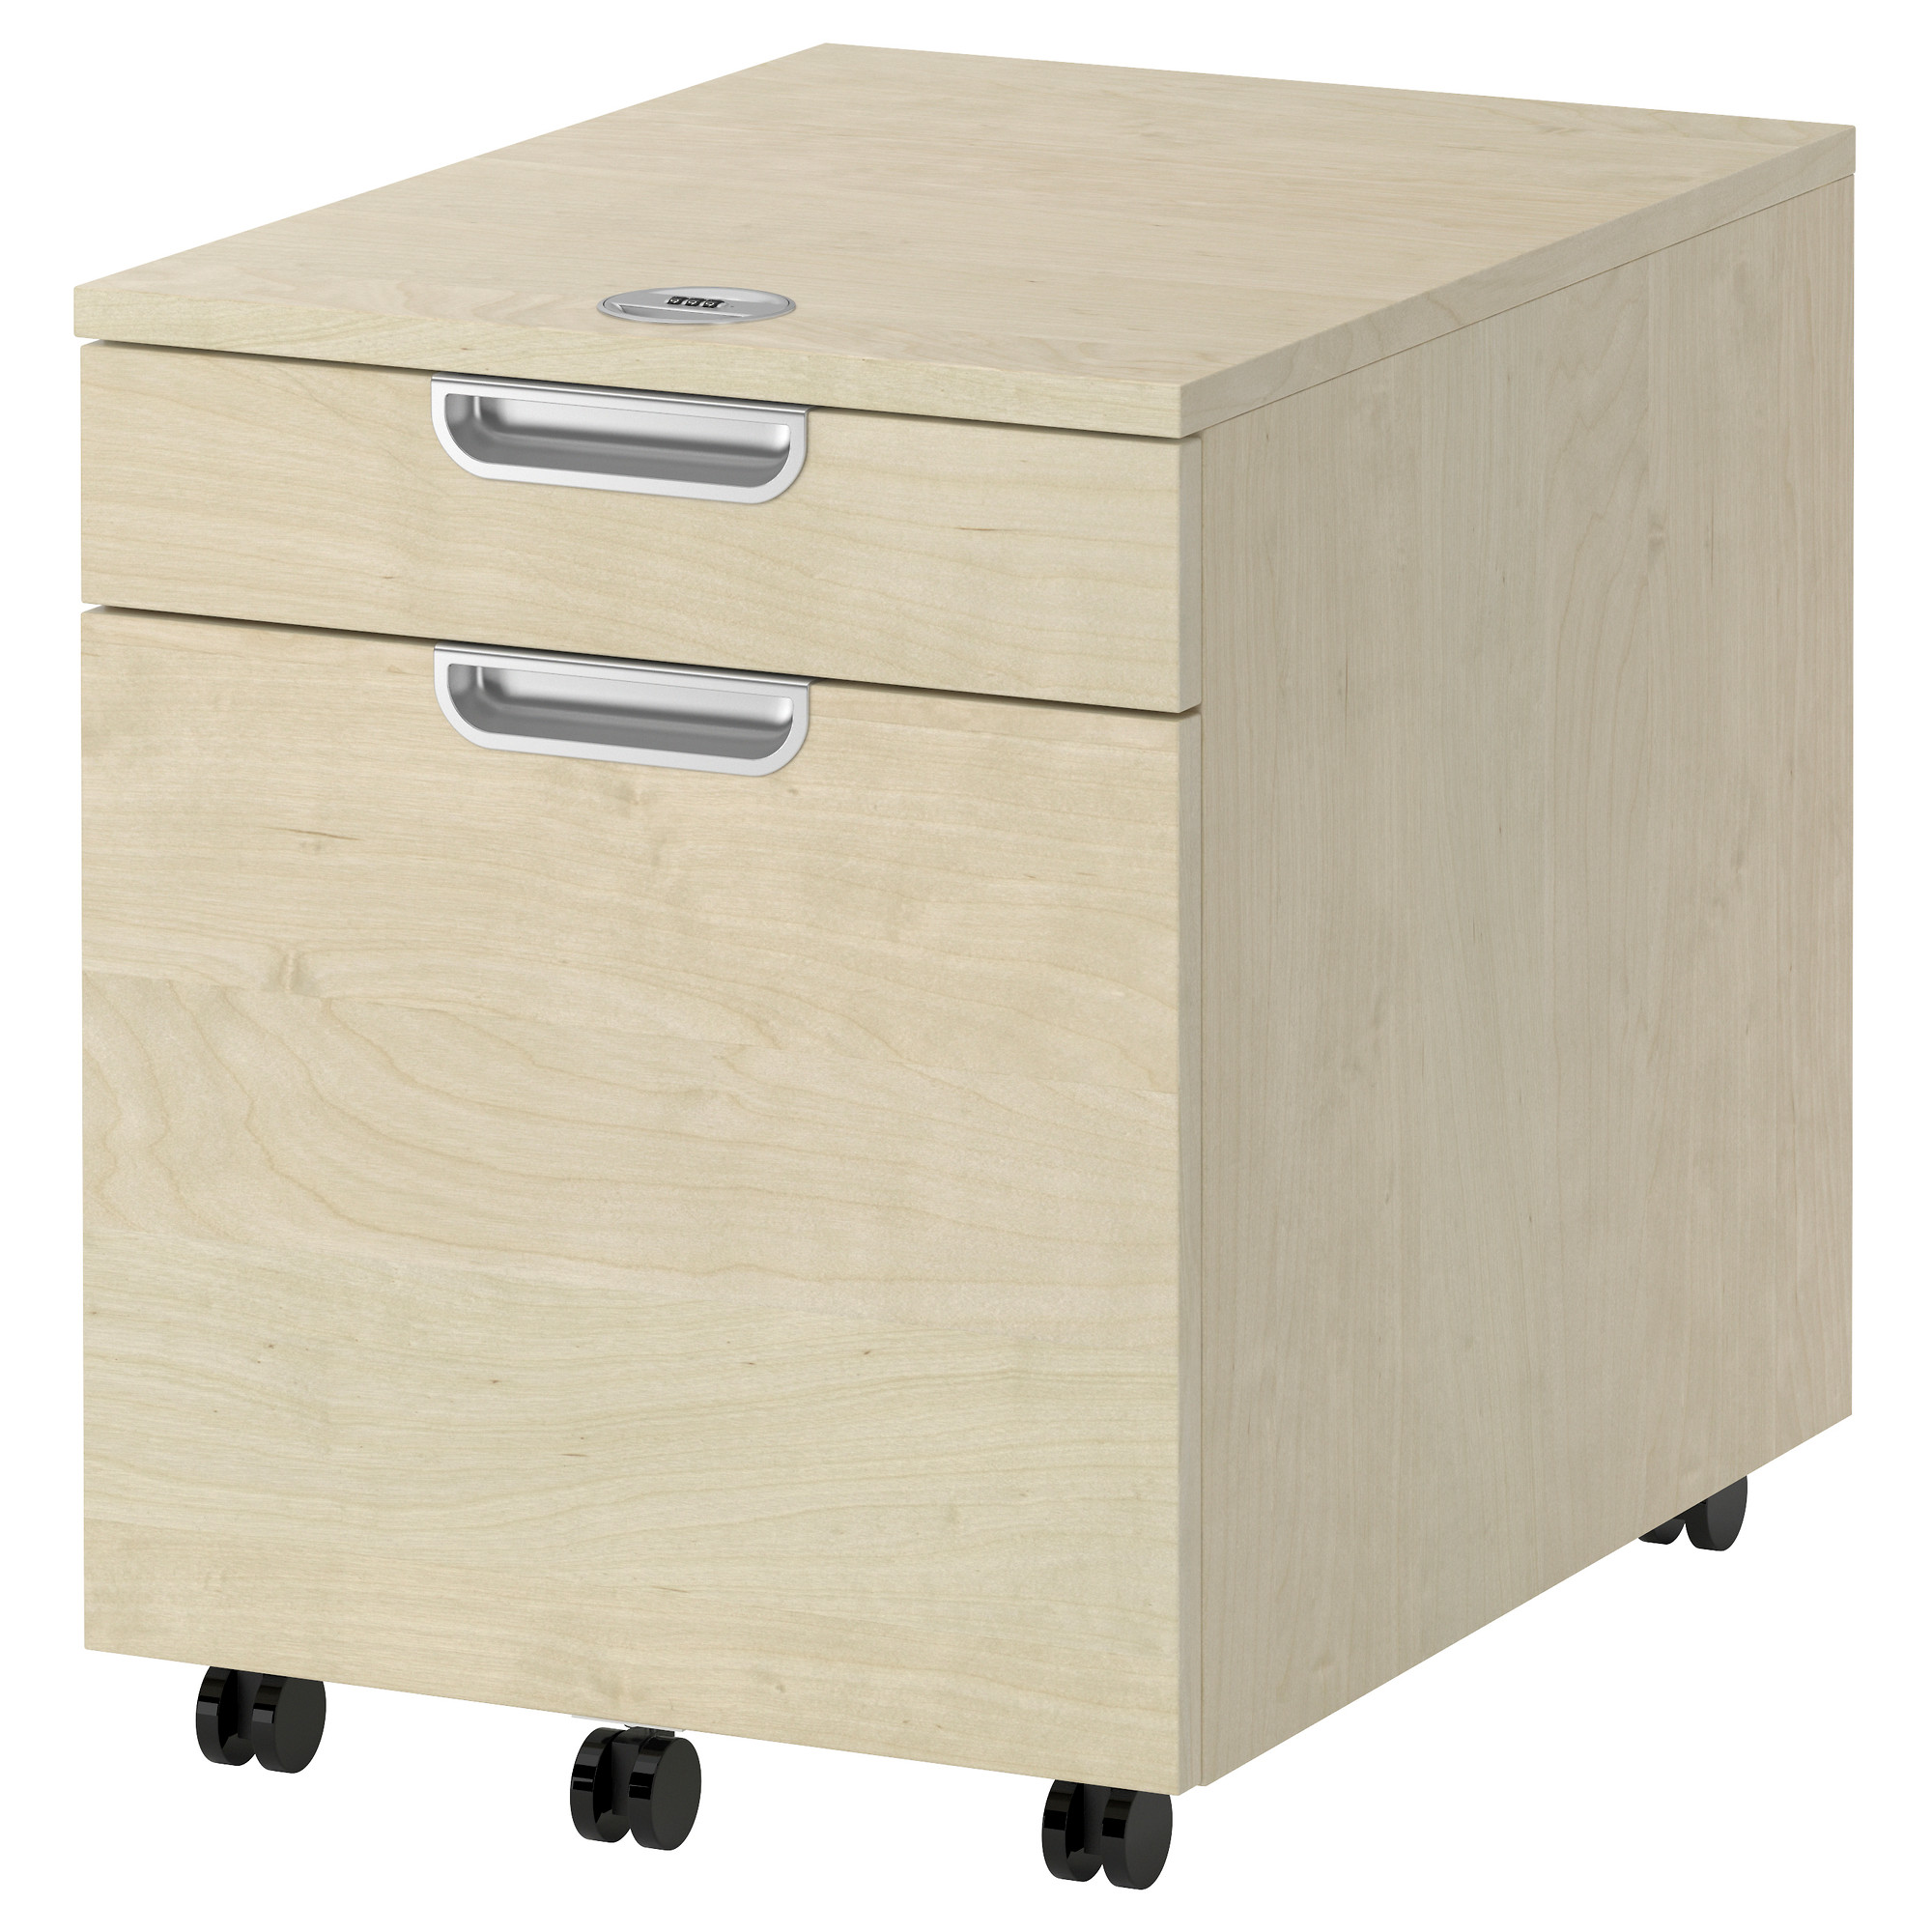 GALANT Drawer unit/drop file storage - birch veneer - IKEA